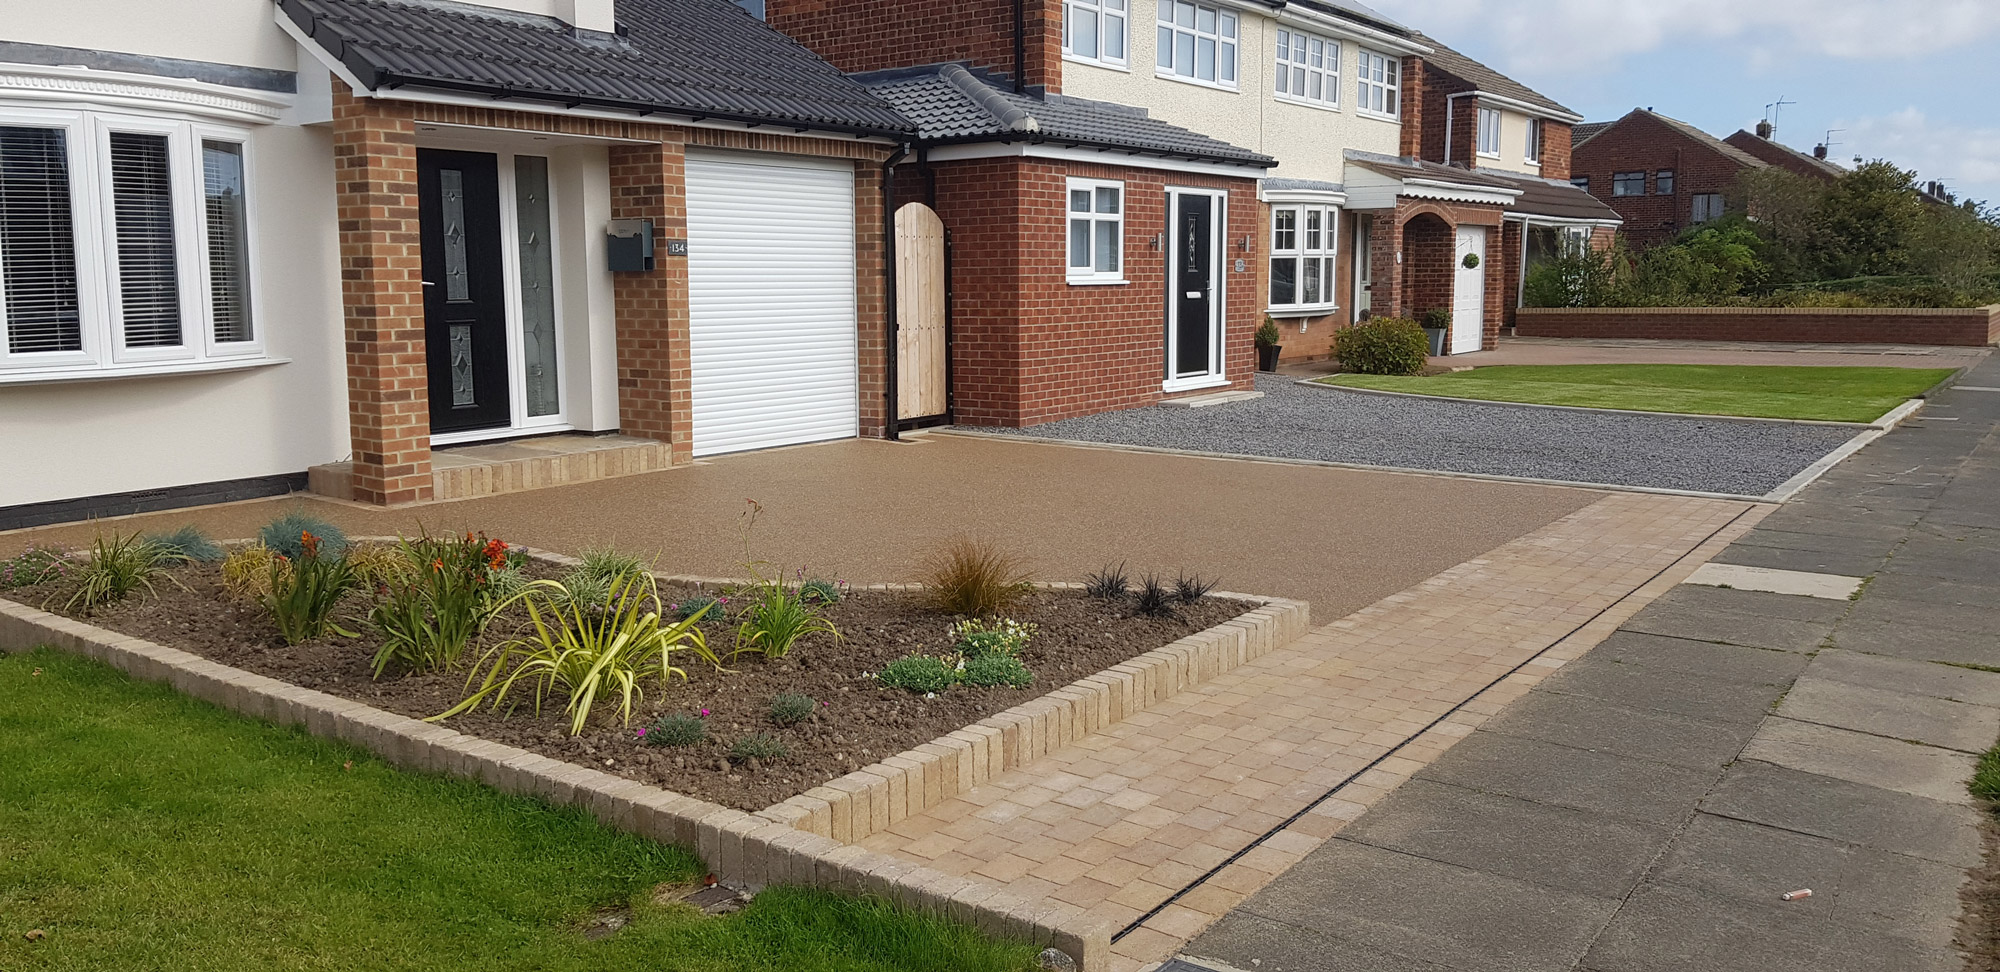 complete resin base driveway and house